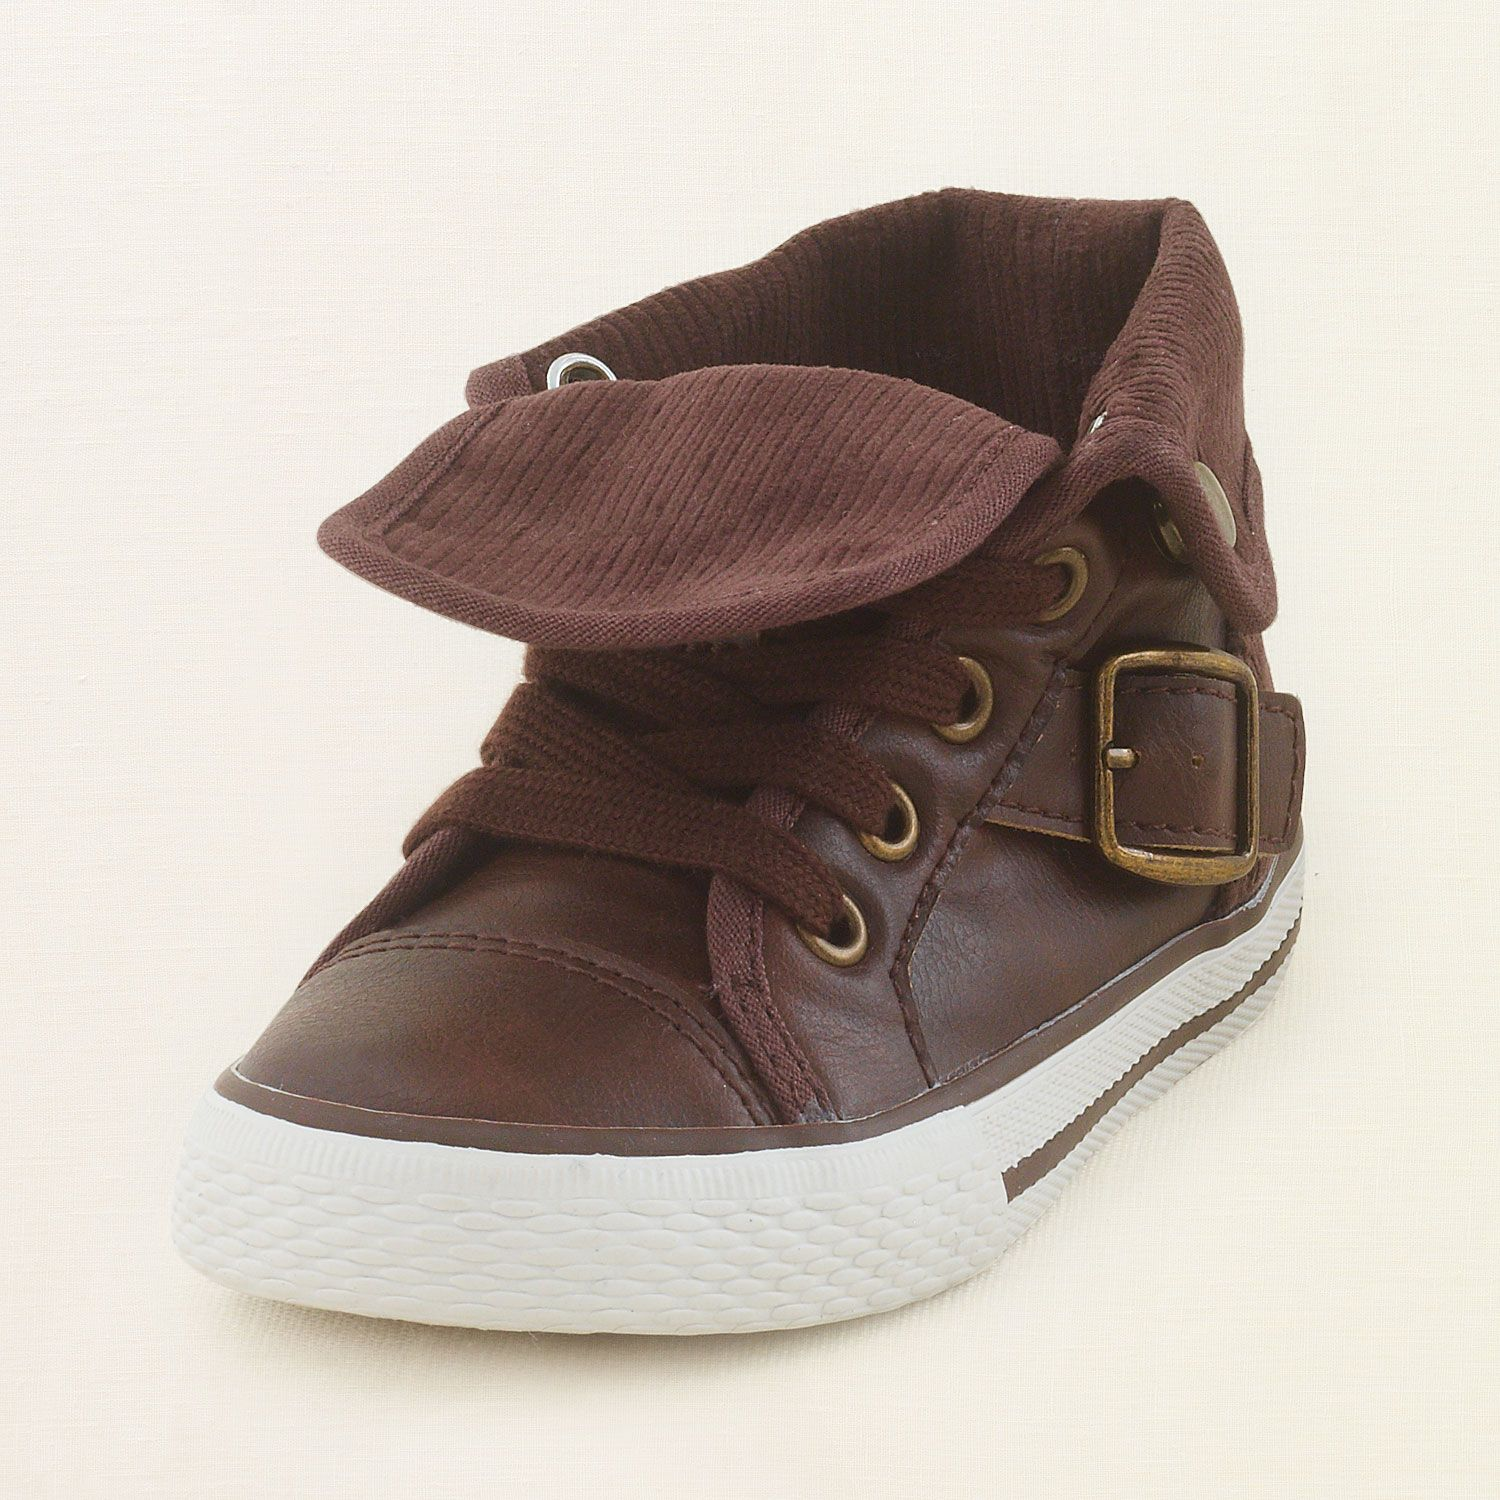 bd55b1a064f2bffbaefc638295e7f1a0 toms 'botas tiny' canvas boot (baby, walker & toddler) baby,Childrens Clothes And Shoes